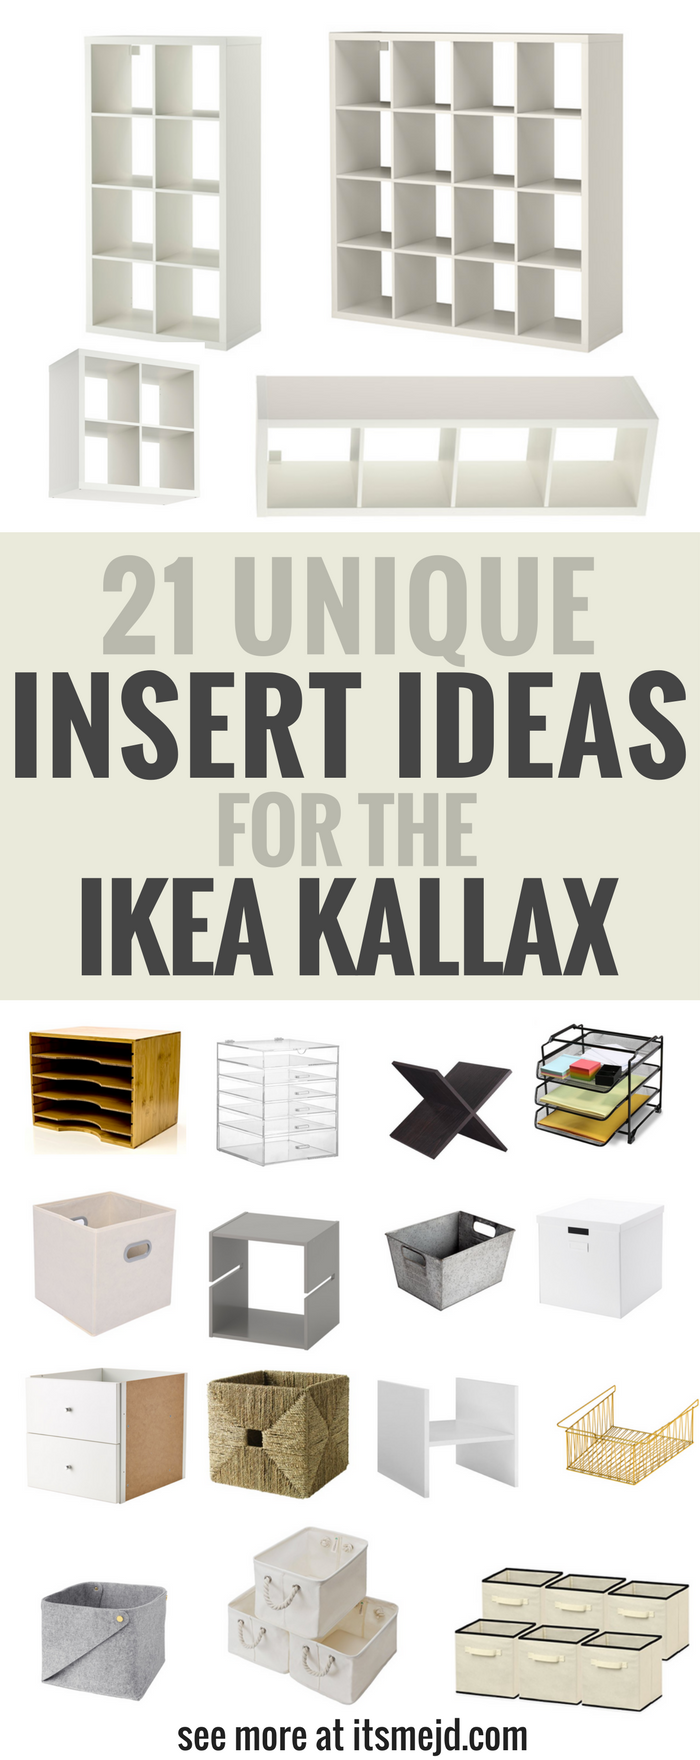 Unique Insert Ideas for an Ikea Kallax Bookcase, DIY , storage, hack